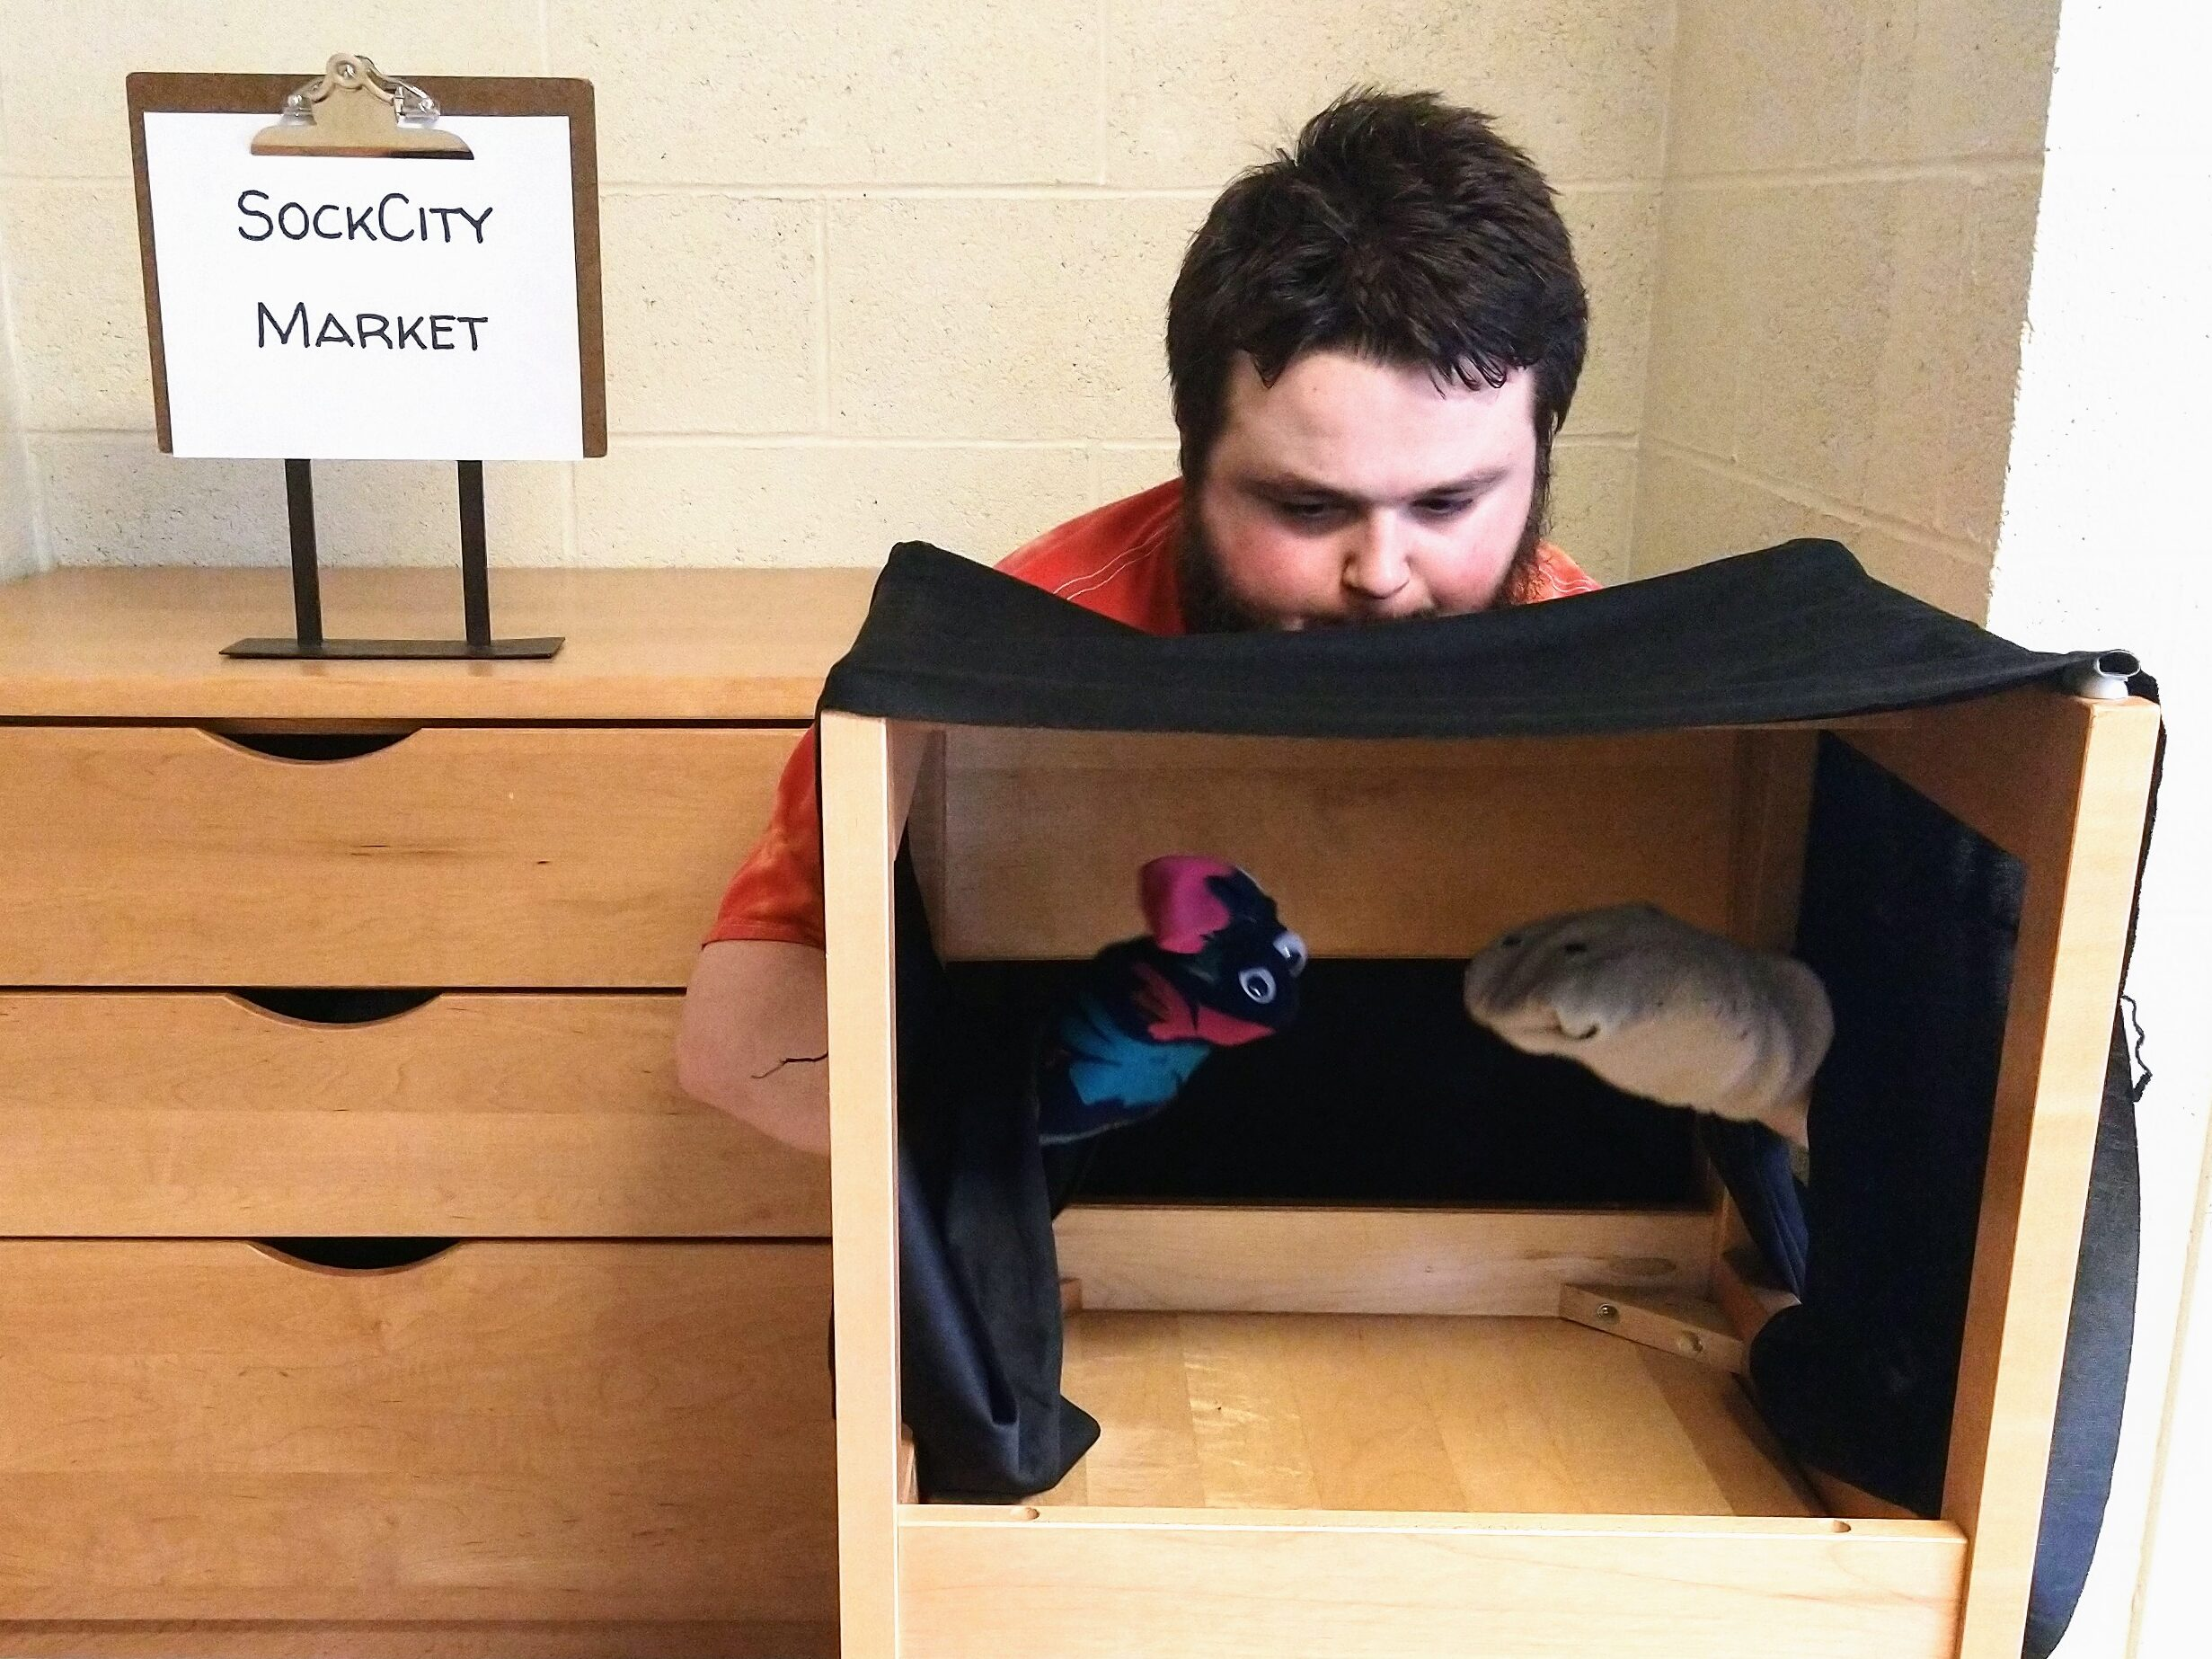 """Man holds up Chausette and Hanes in the puppet theatre. The sign behind him says """"SockCity Market"""""""